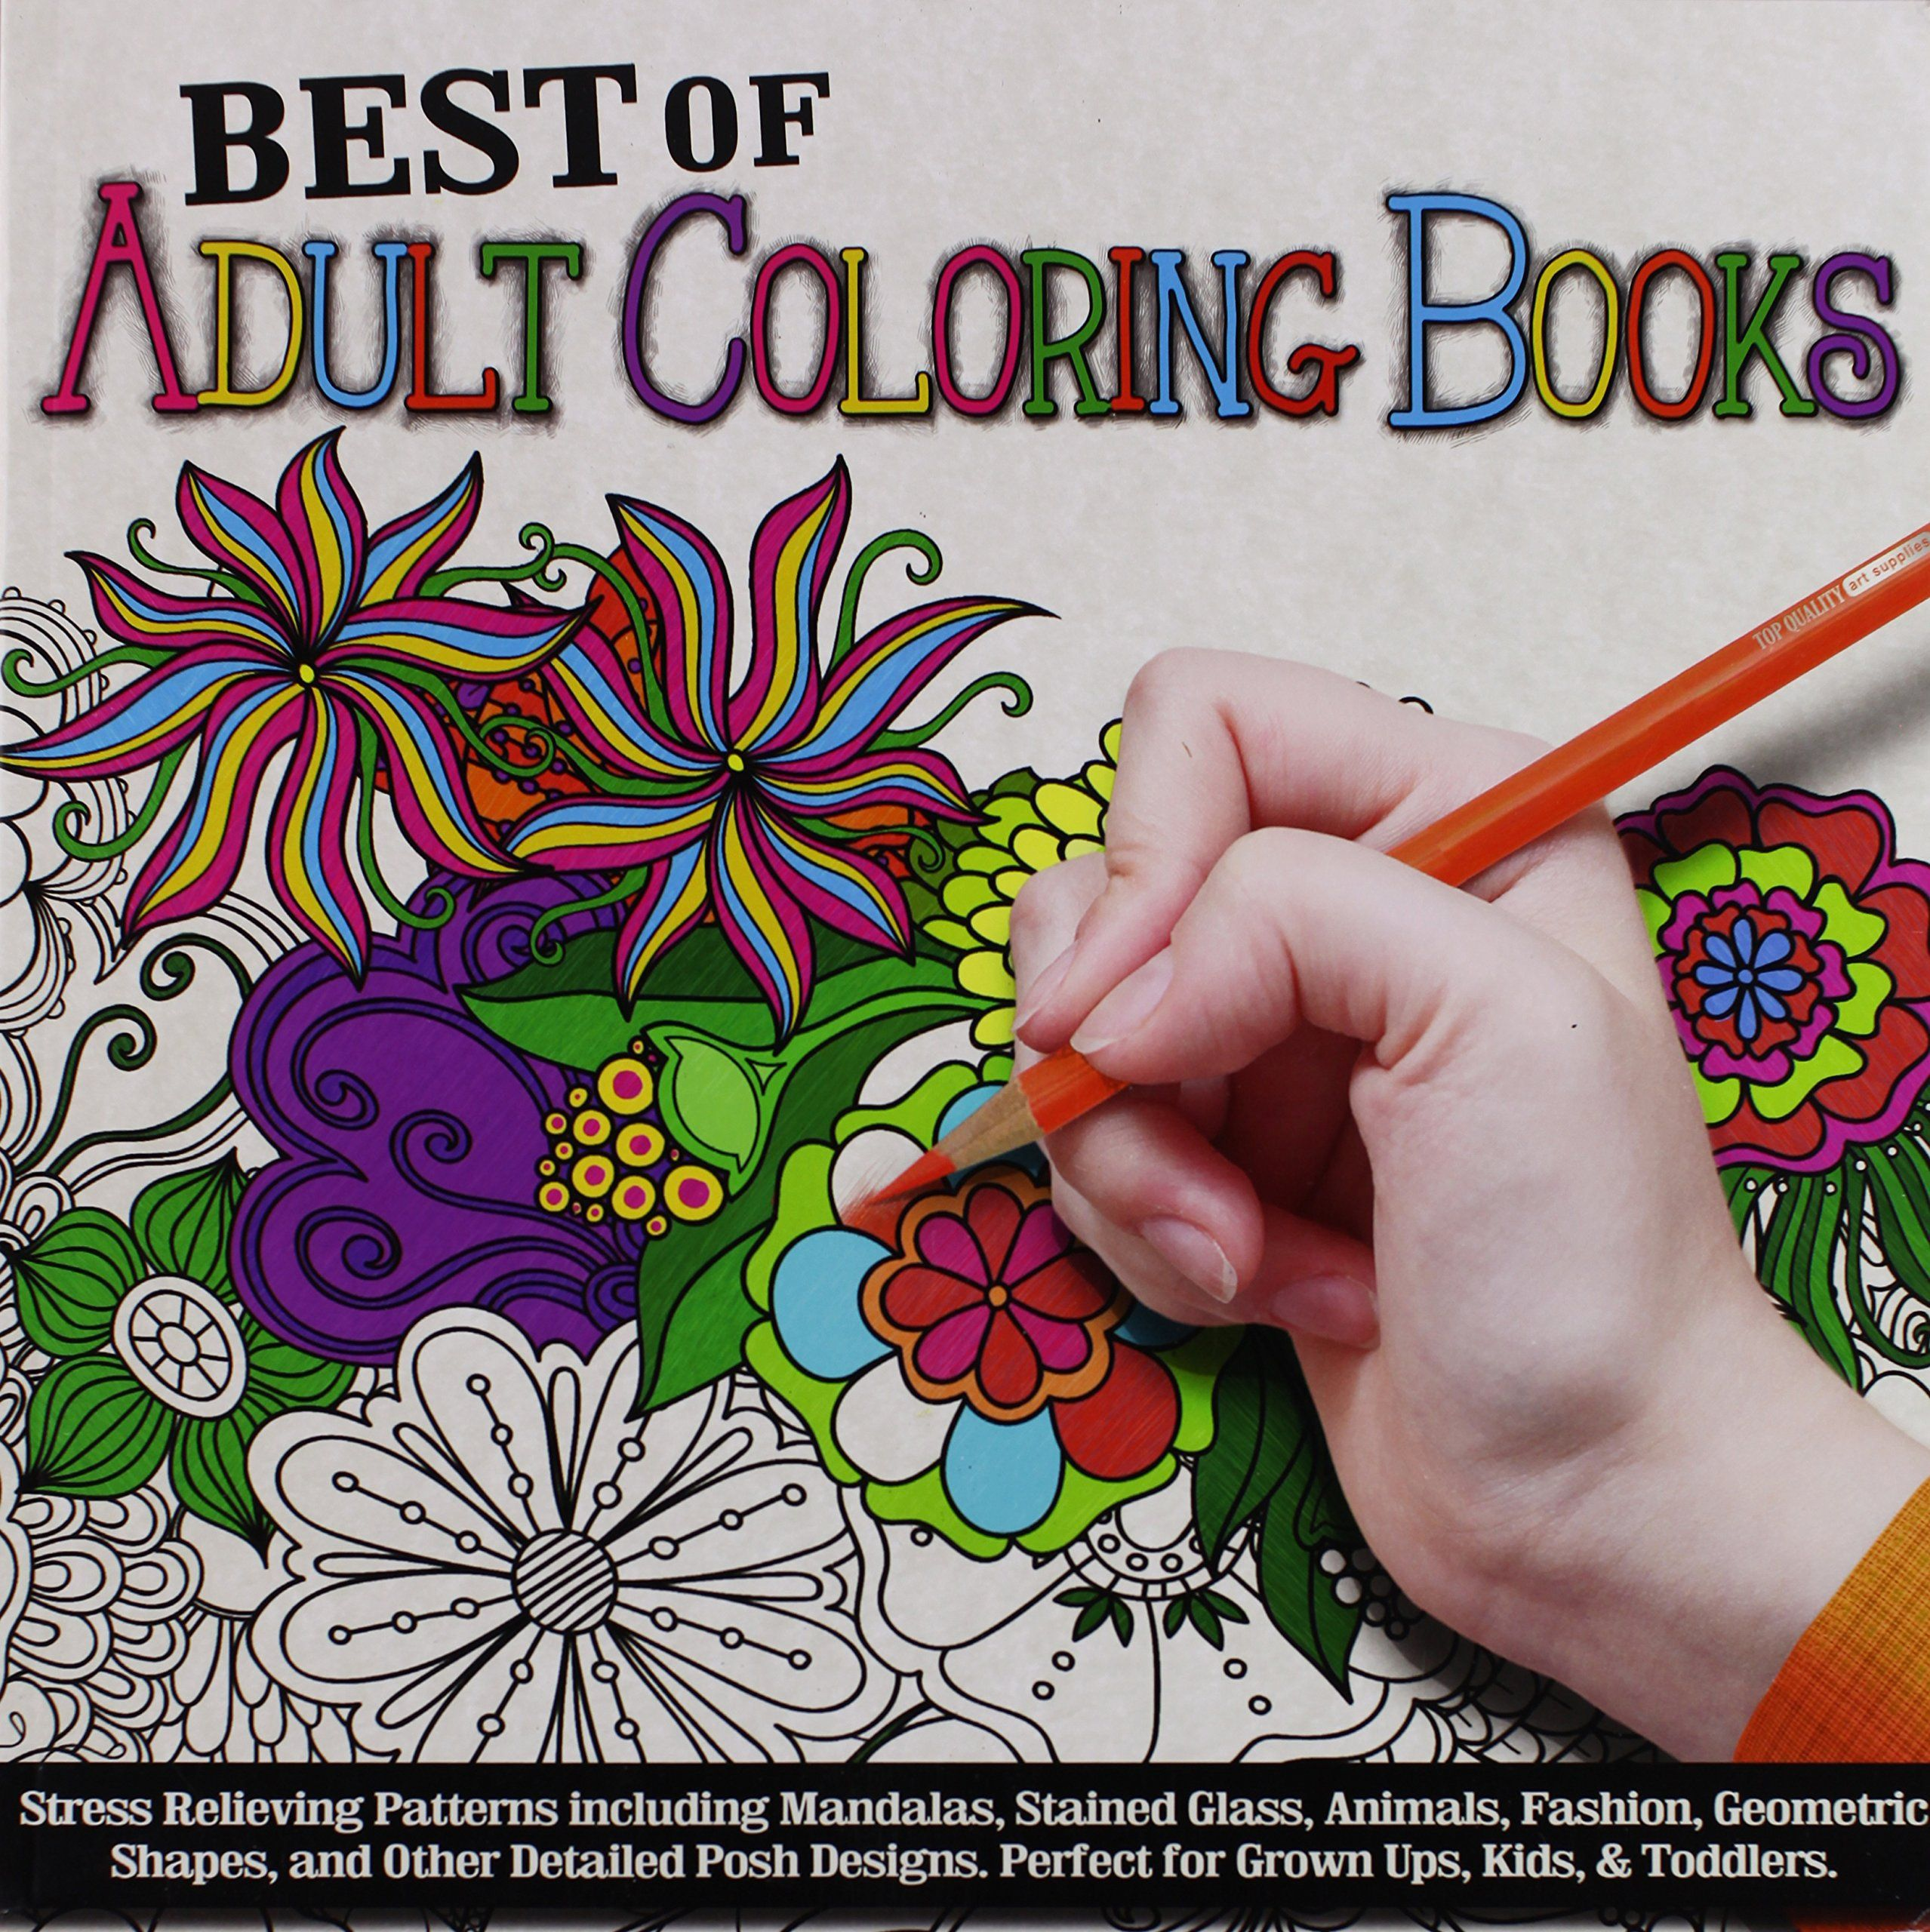 Best stress relieving coloring books for adults - Adult Coloring Books Provide Mindful Stress Relief Through Creative Expression Coloring Offers Relaxation And A Break From A Busy Tech Filled World